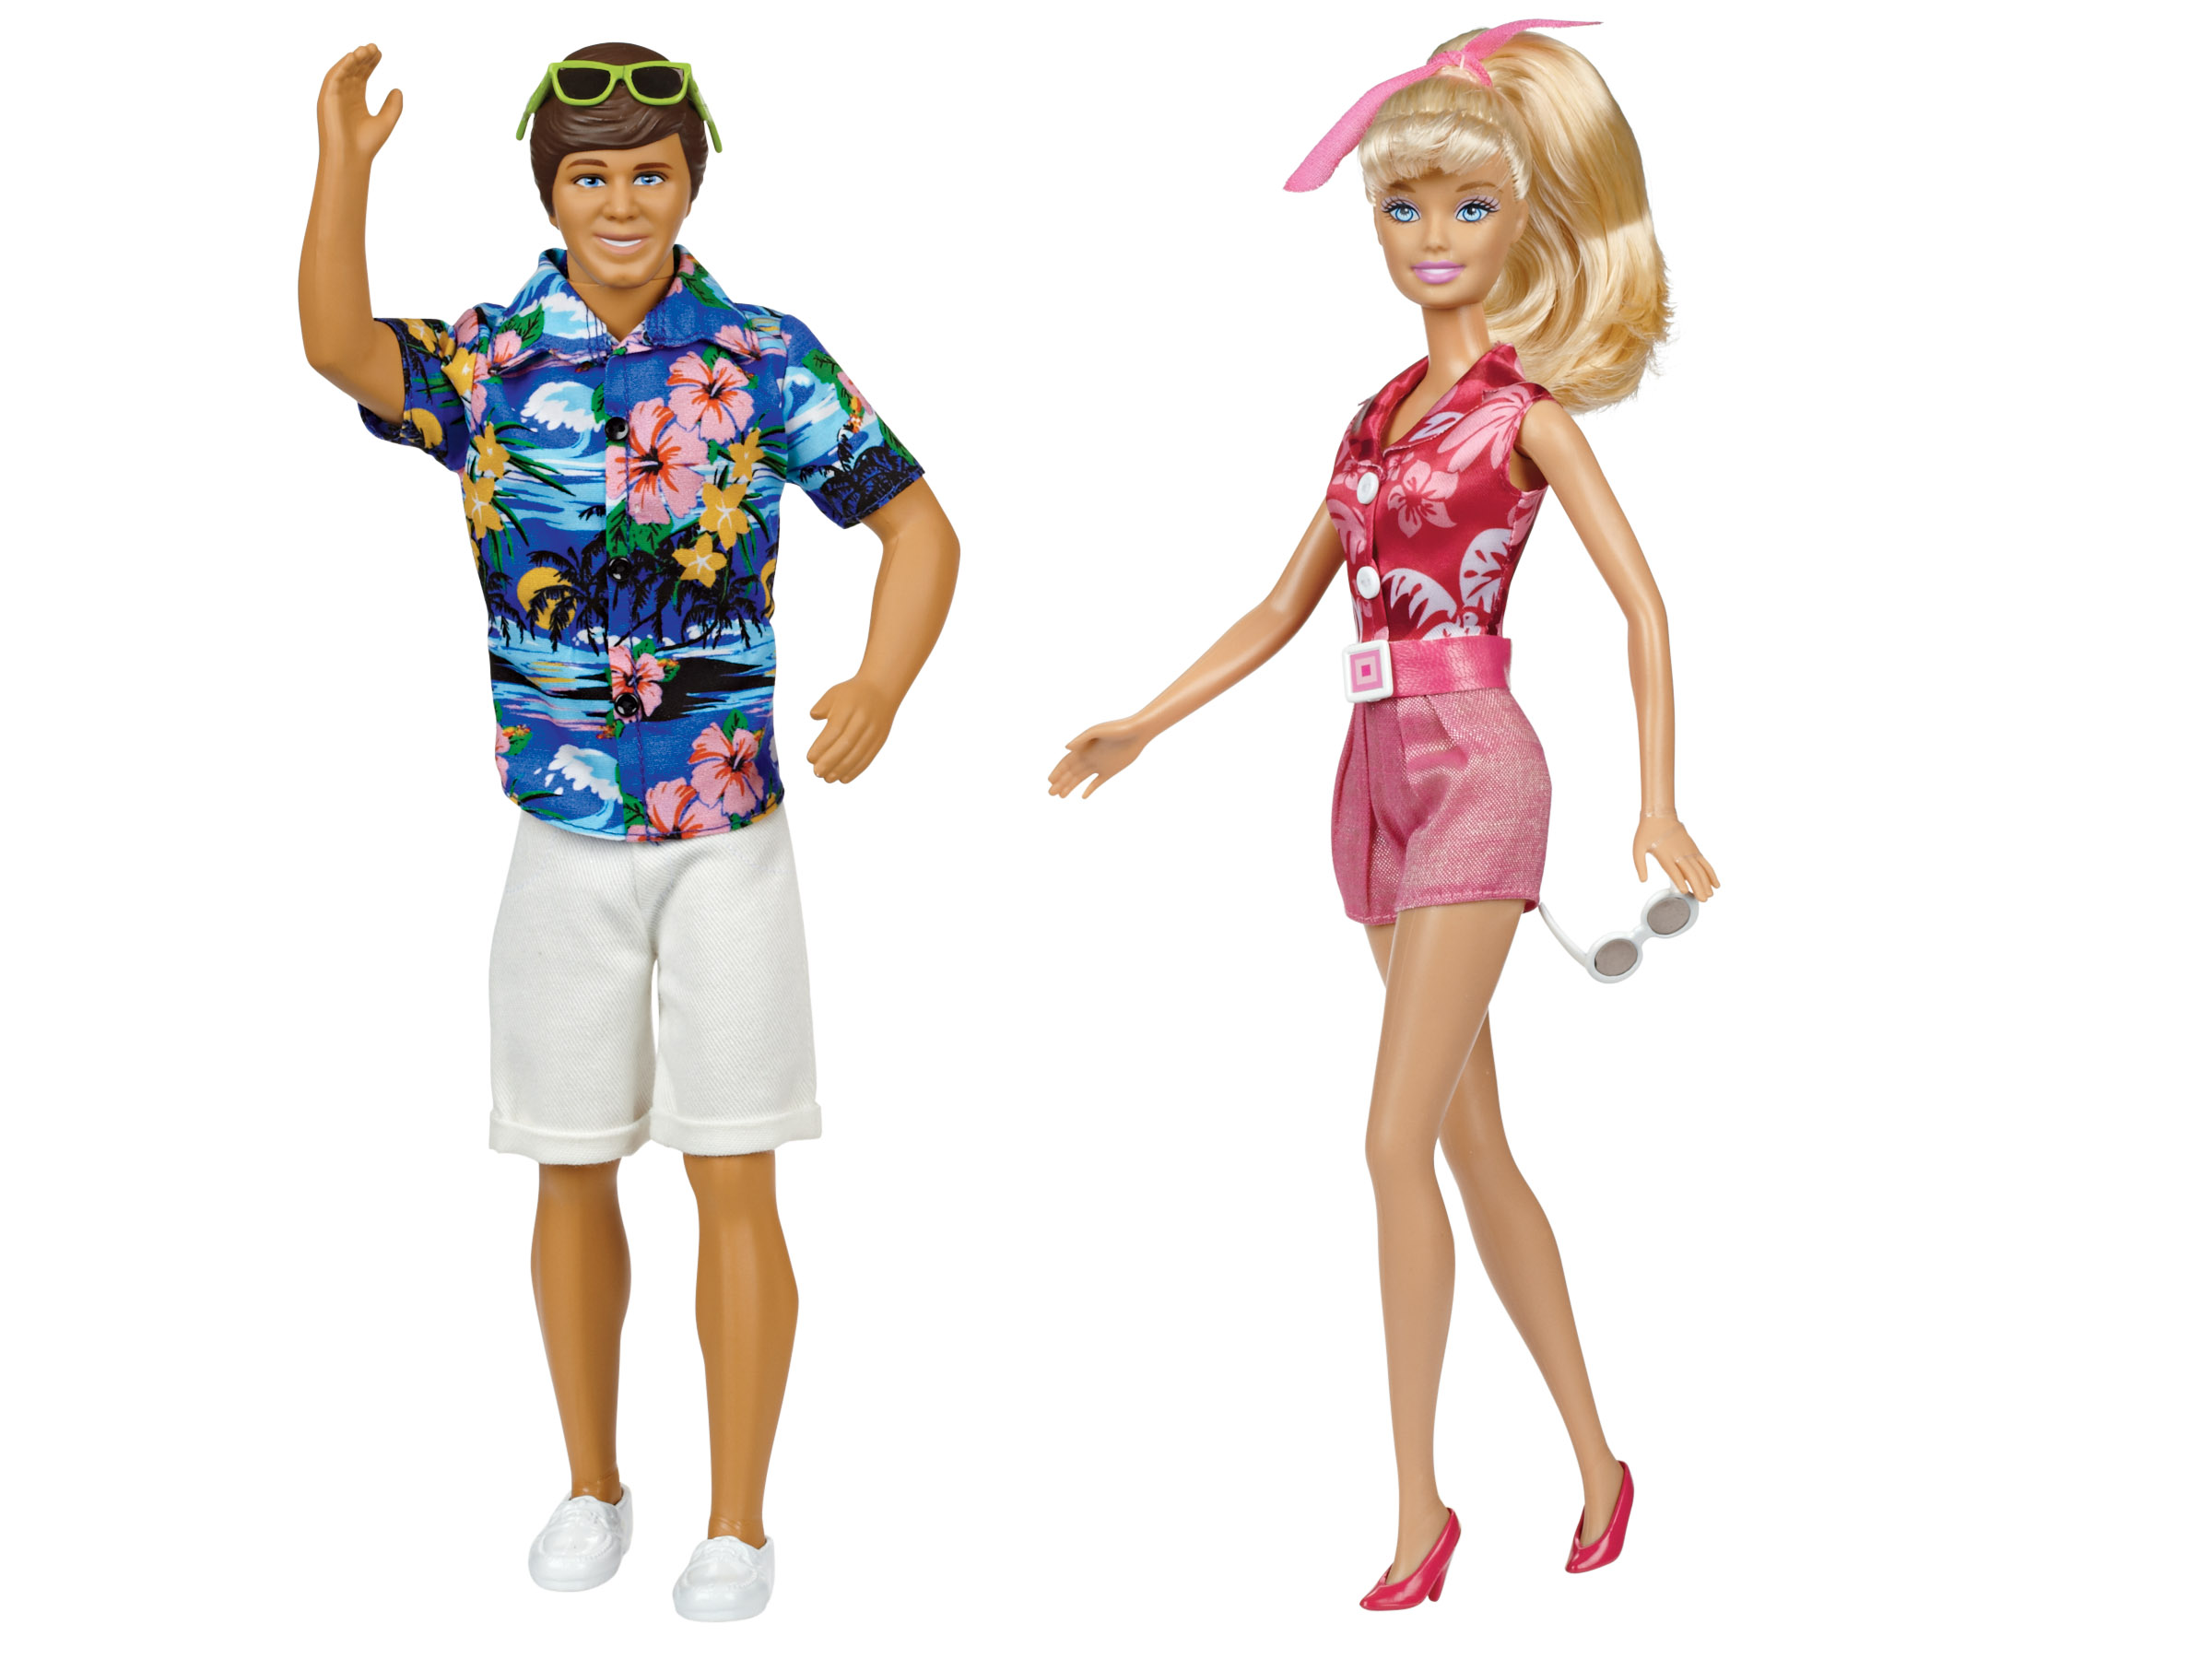 5a253c2737fa3 Toy Story Barbie and Ken Hawaiian Vacation Doll flyer